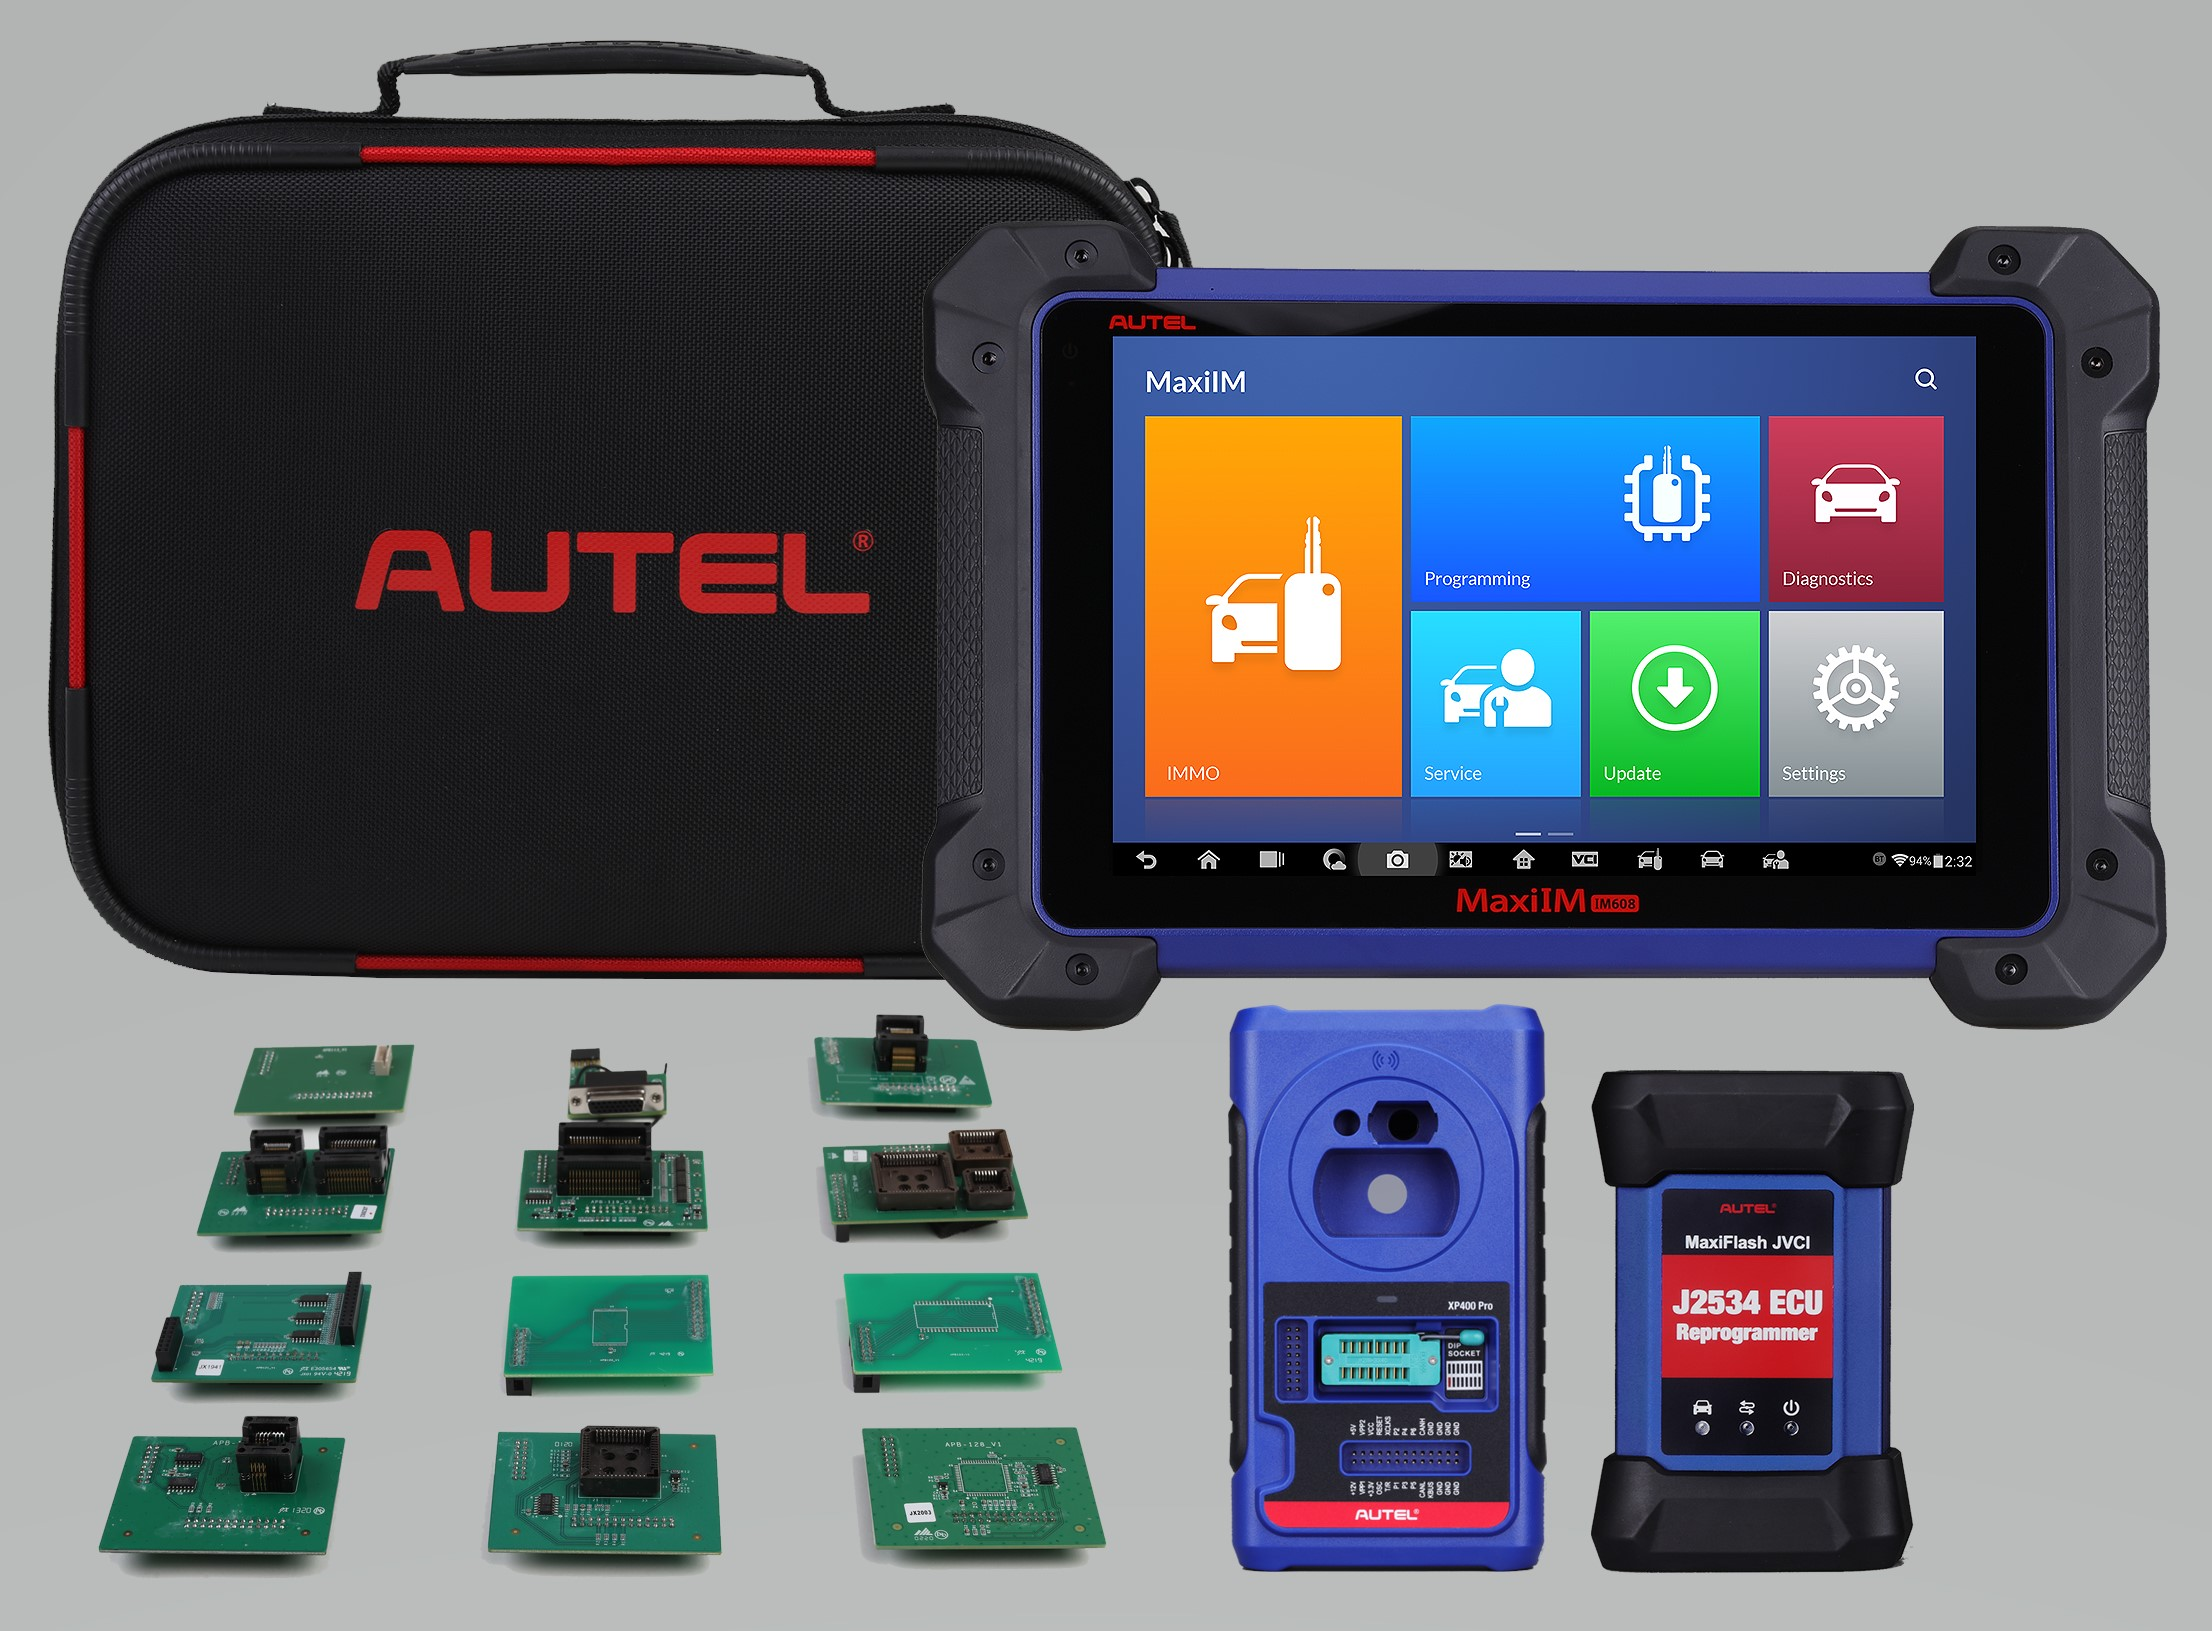 Autel US Releases IM608 Pro Key Programming Bundle